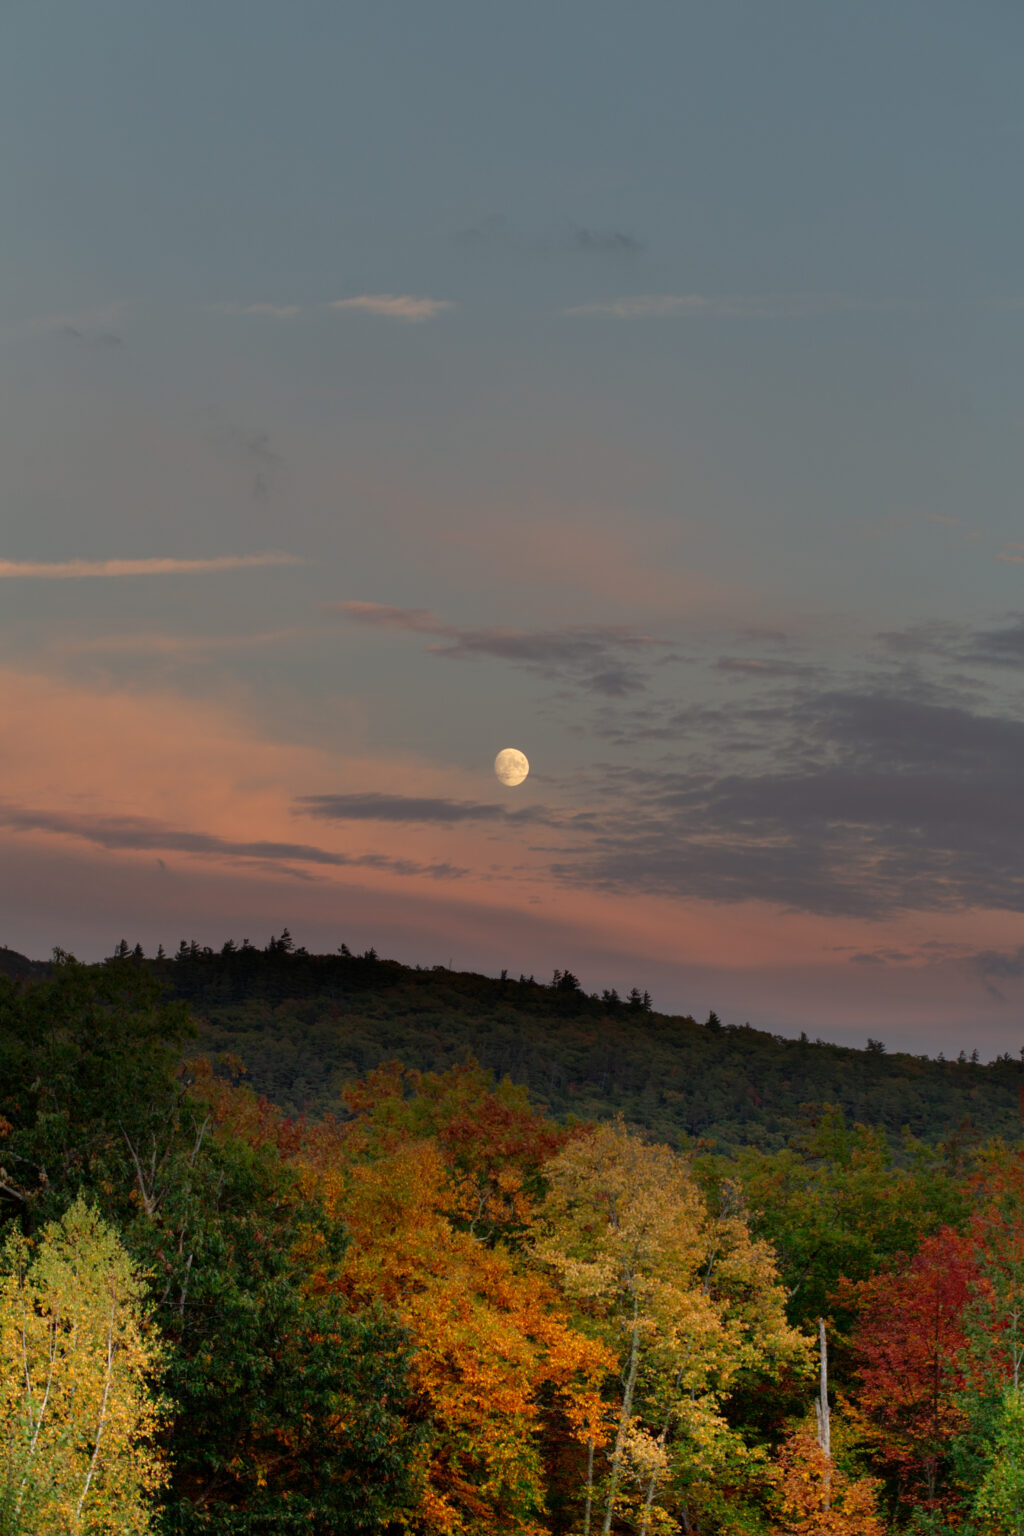 Moon Rising Over Autumn Trees